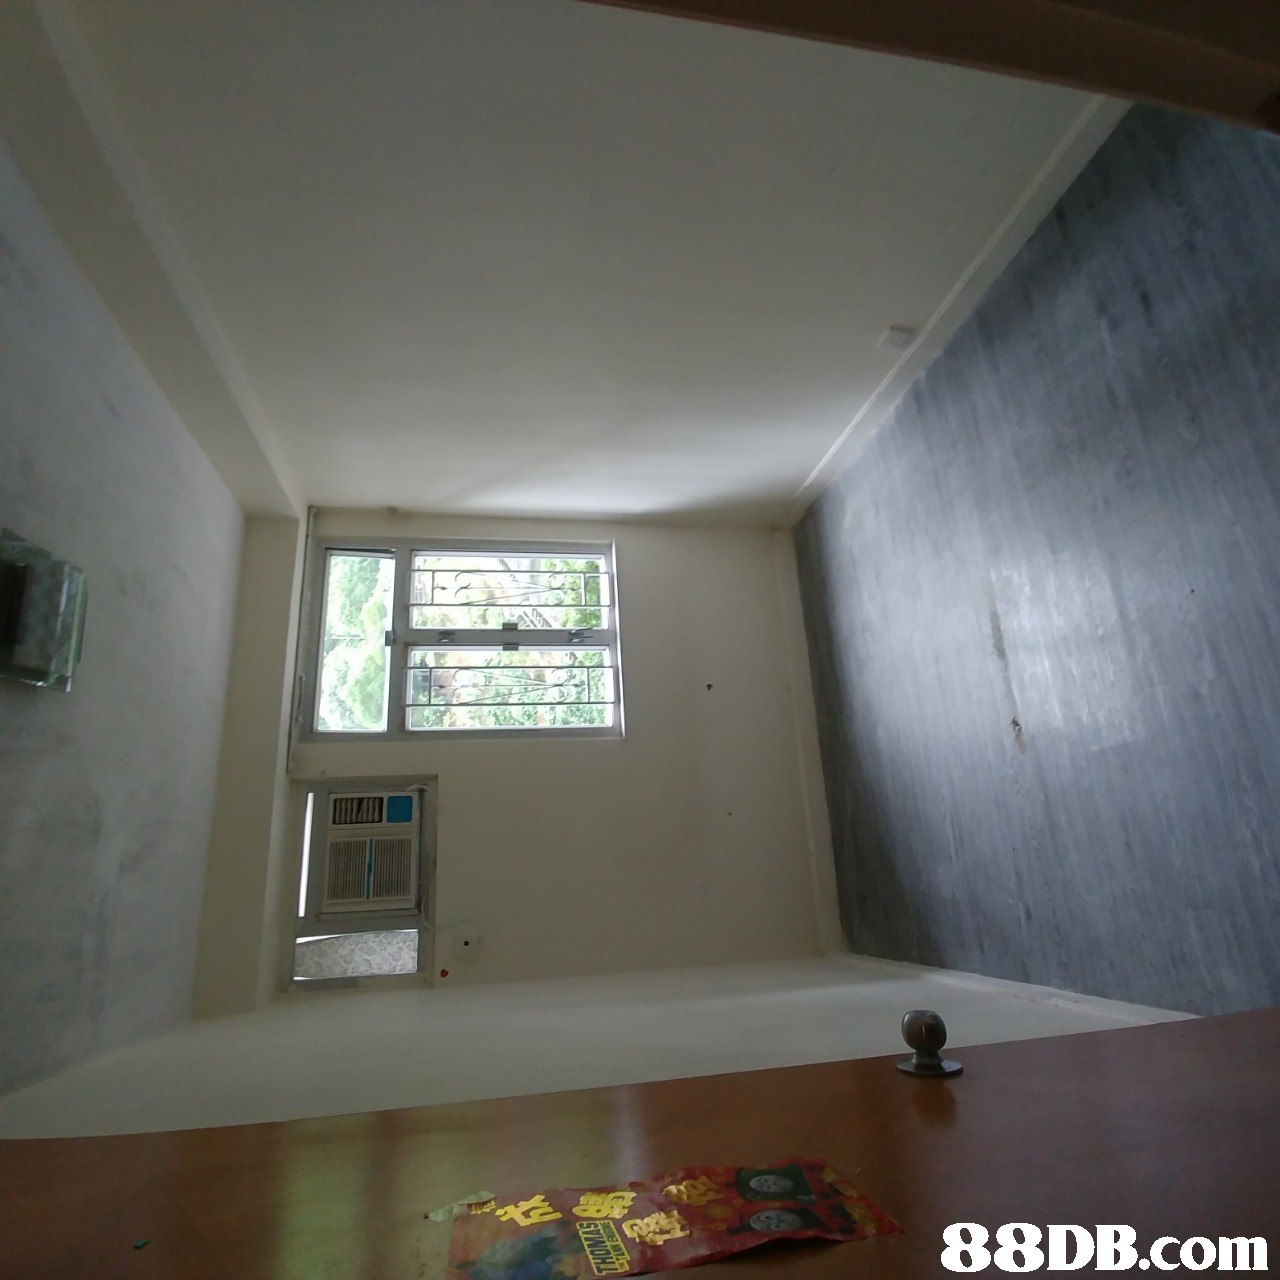 ceiling,property,room,wall,daylighting